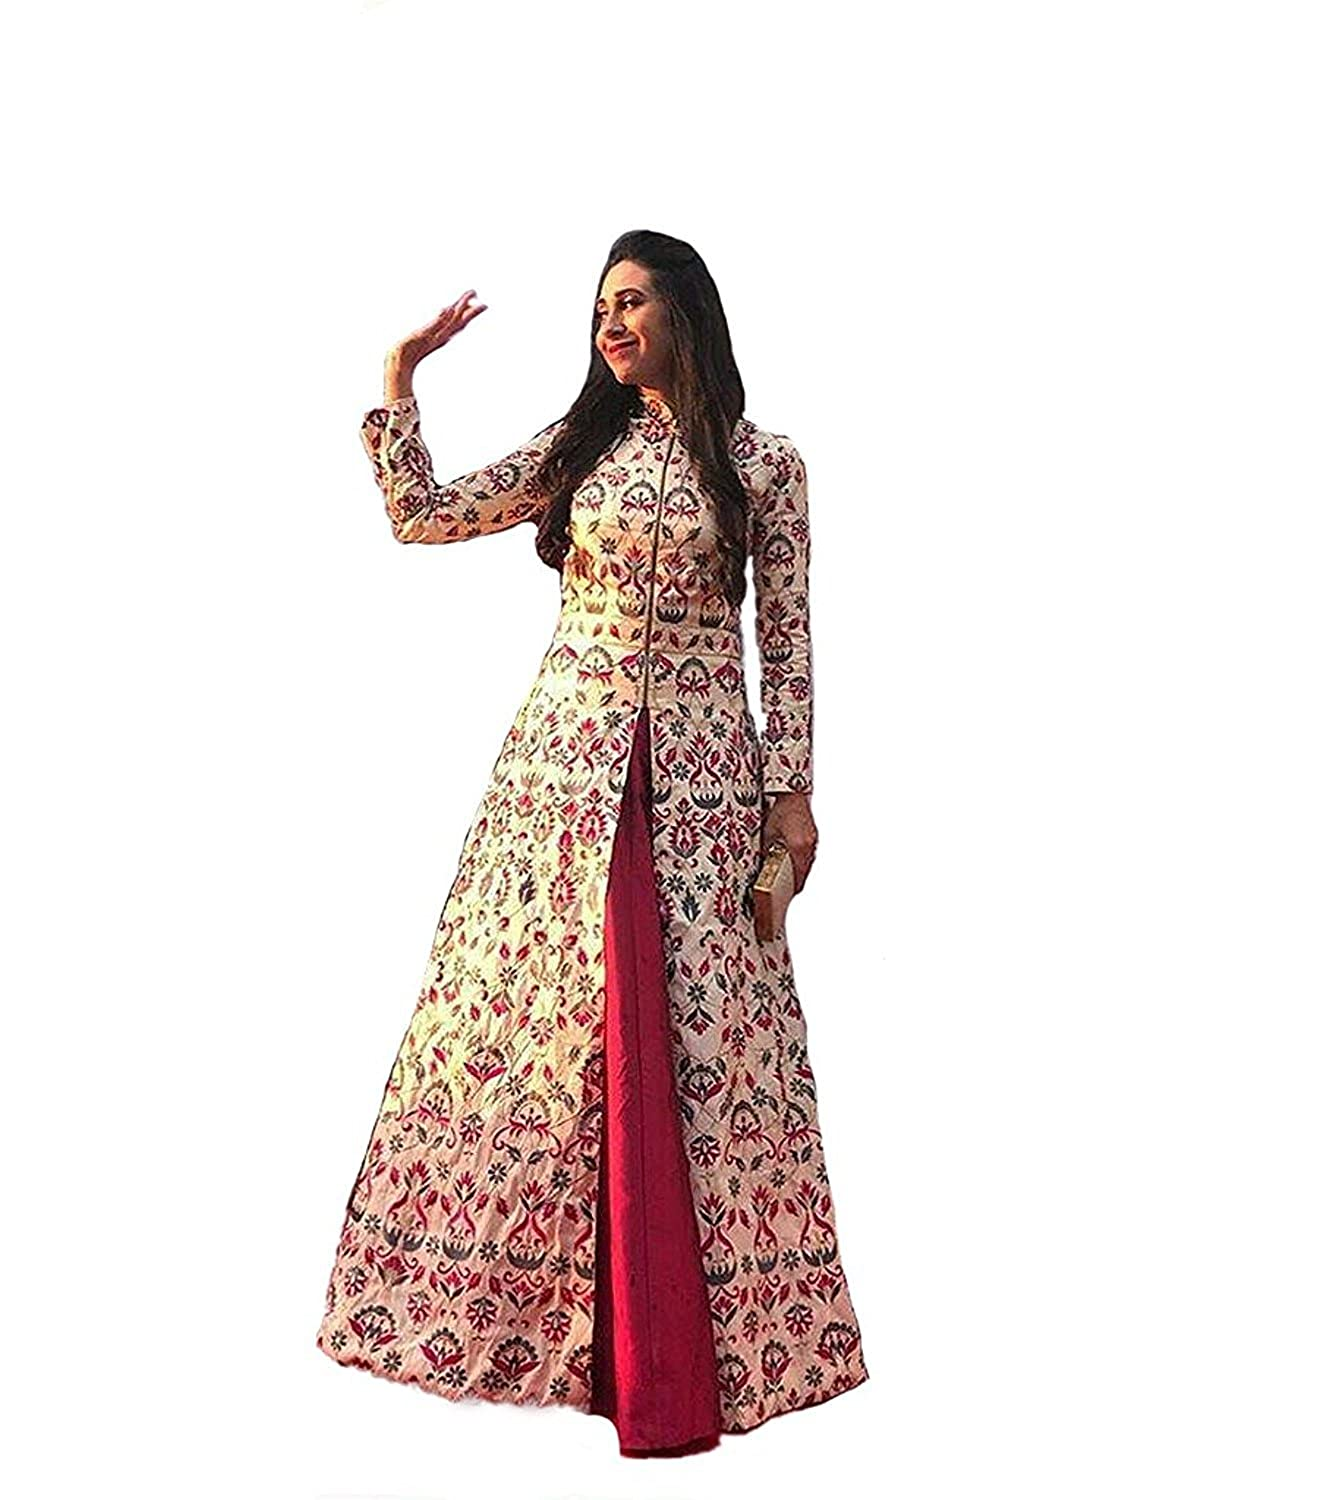 What Is The New Trend In Ethnic Clothing Now